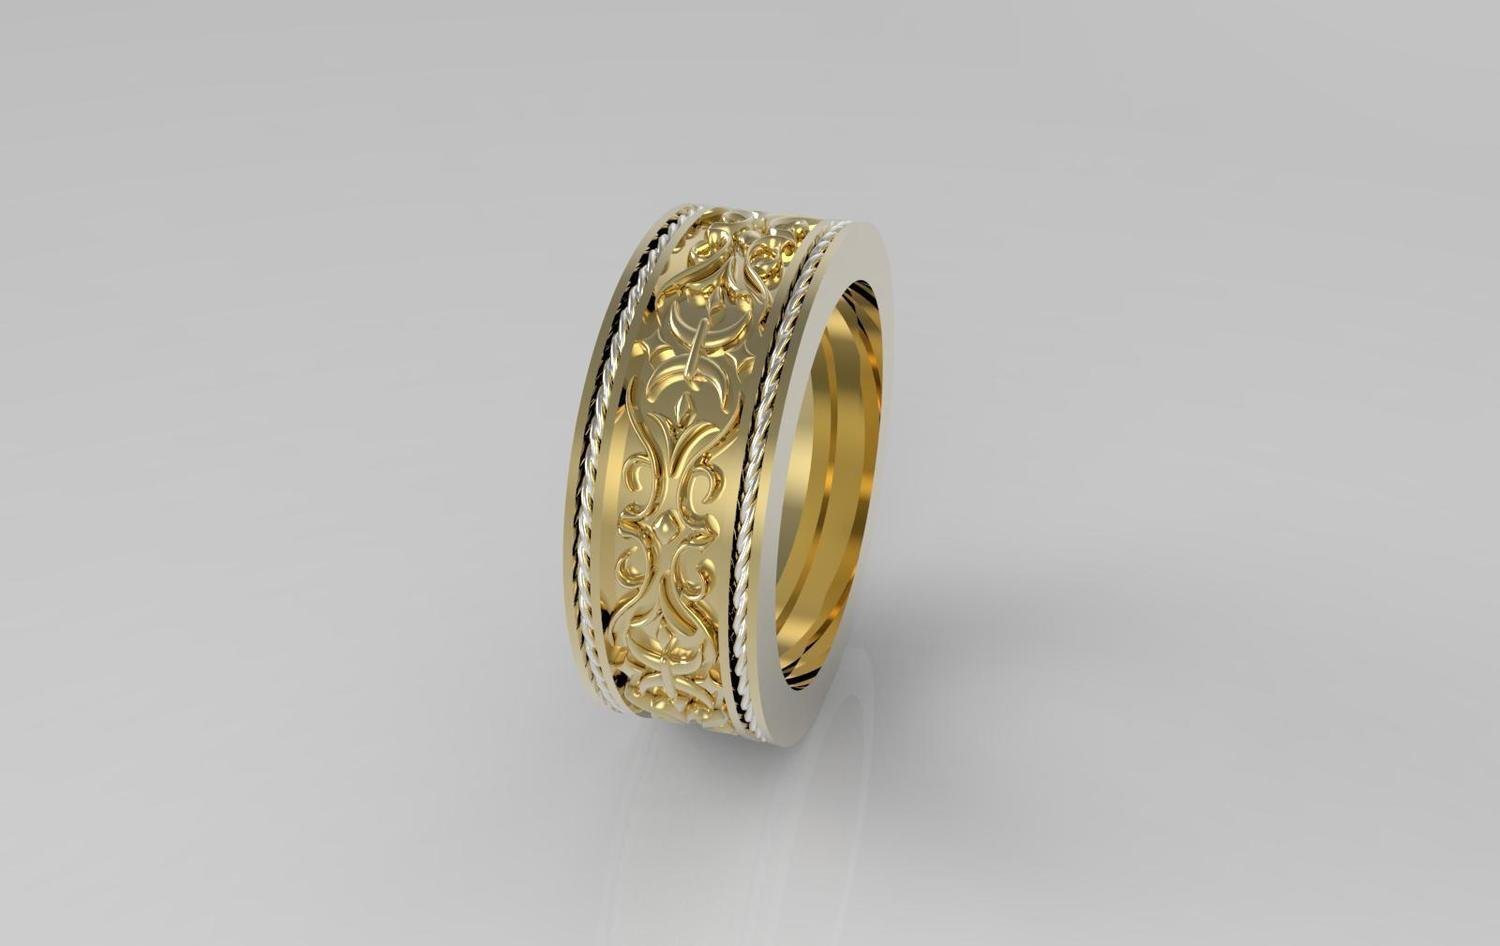 CAD Model of Wedding Ring